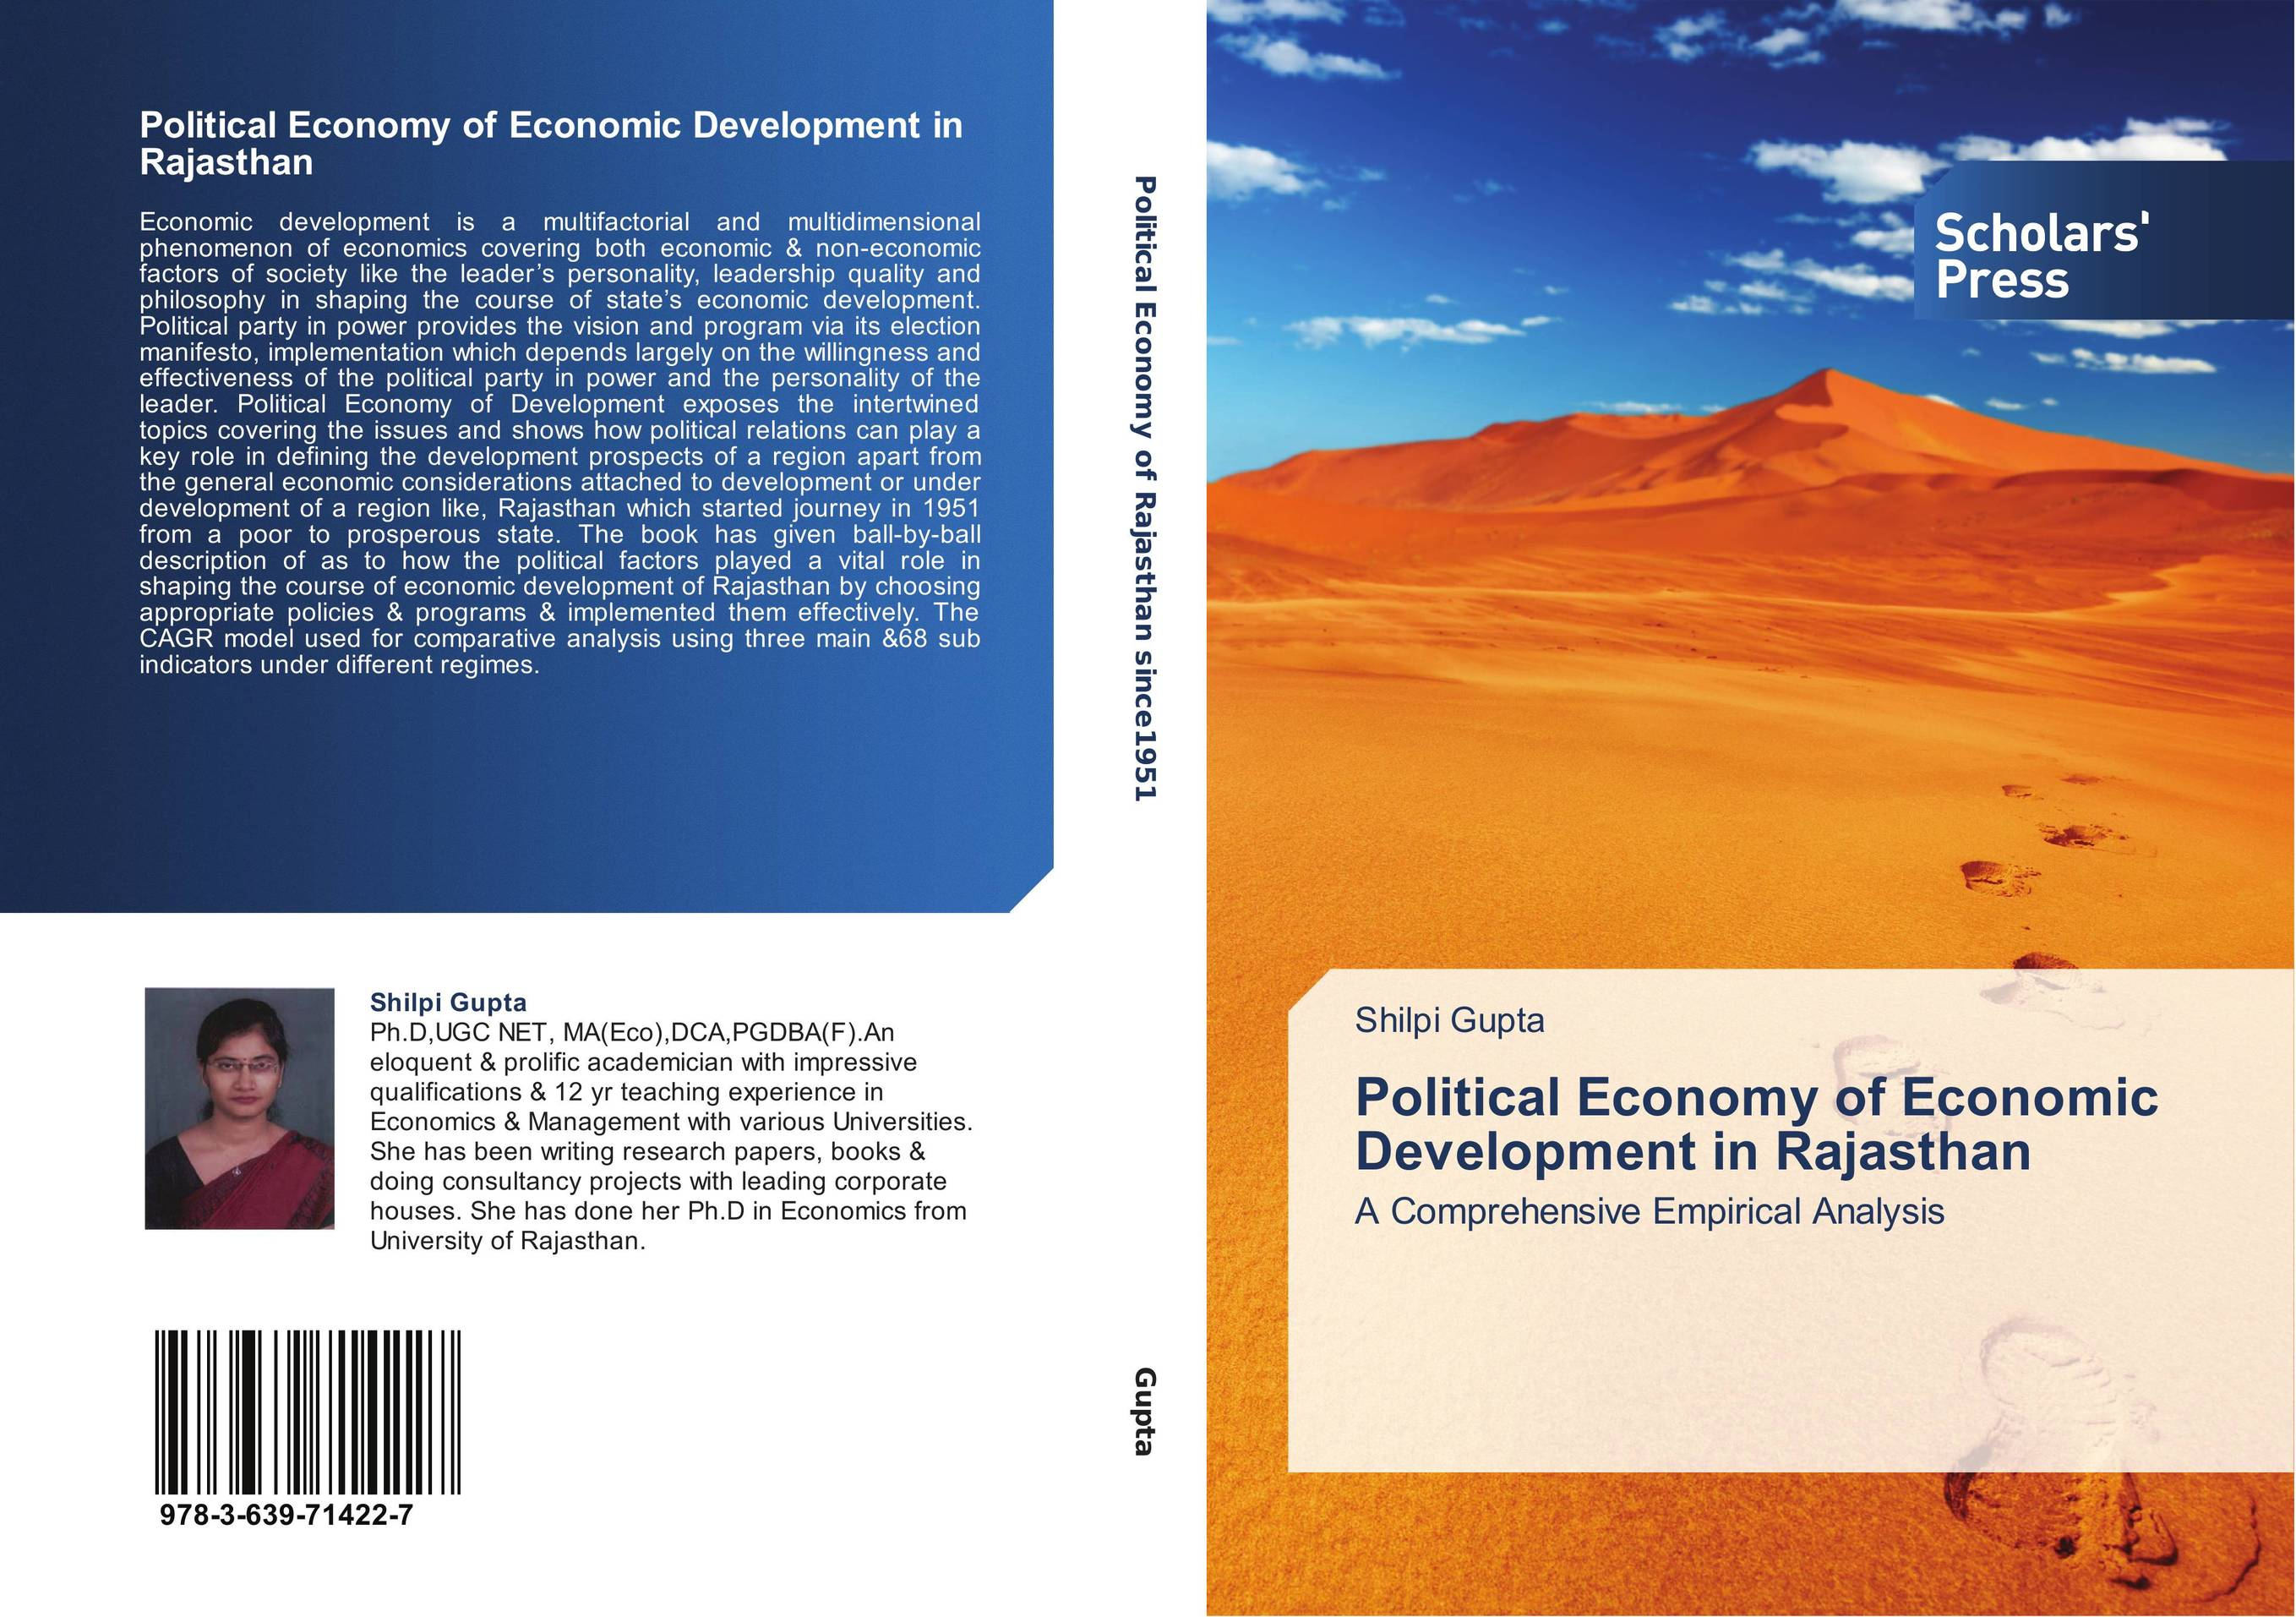 what drives political and economic development The management committee consists of the world bank, islamic development bank, asian development bank, united nations development programme, ministry of finance, and the united nations assistance mission in afghanistan as an observer.